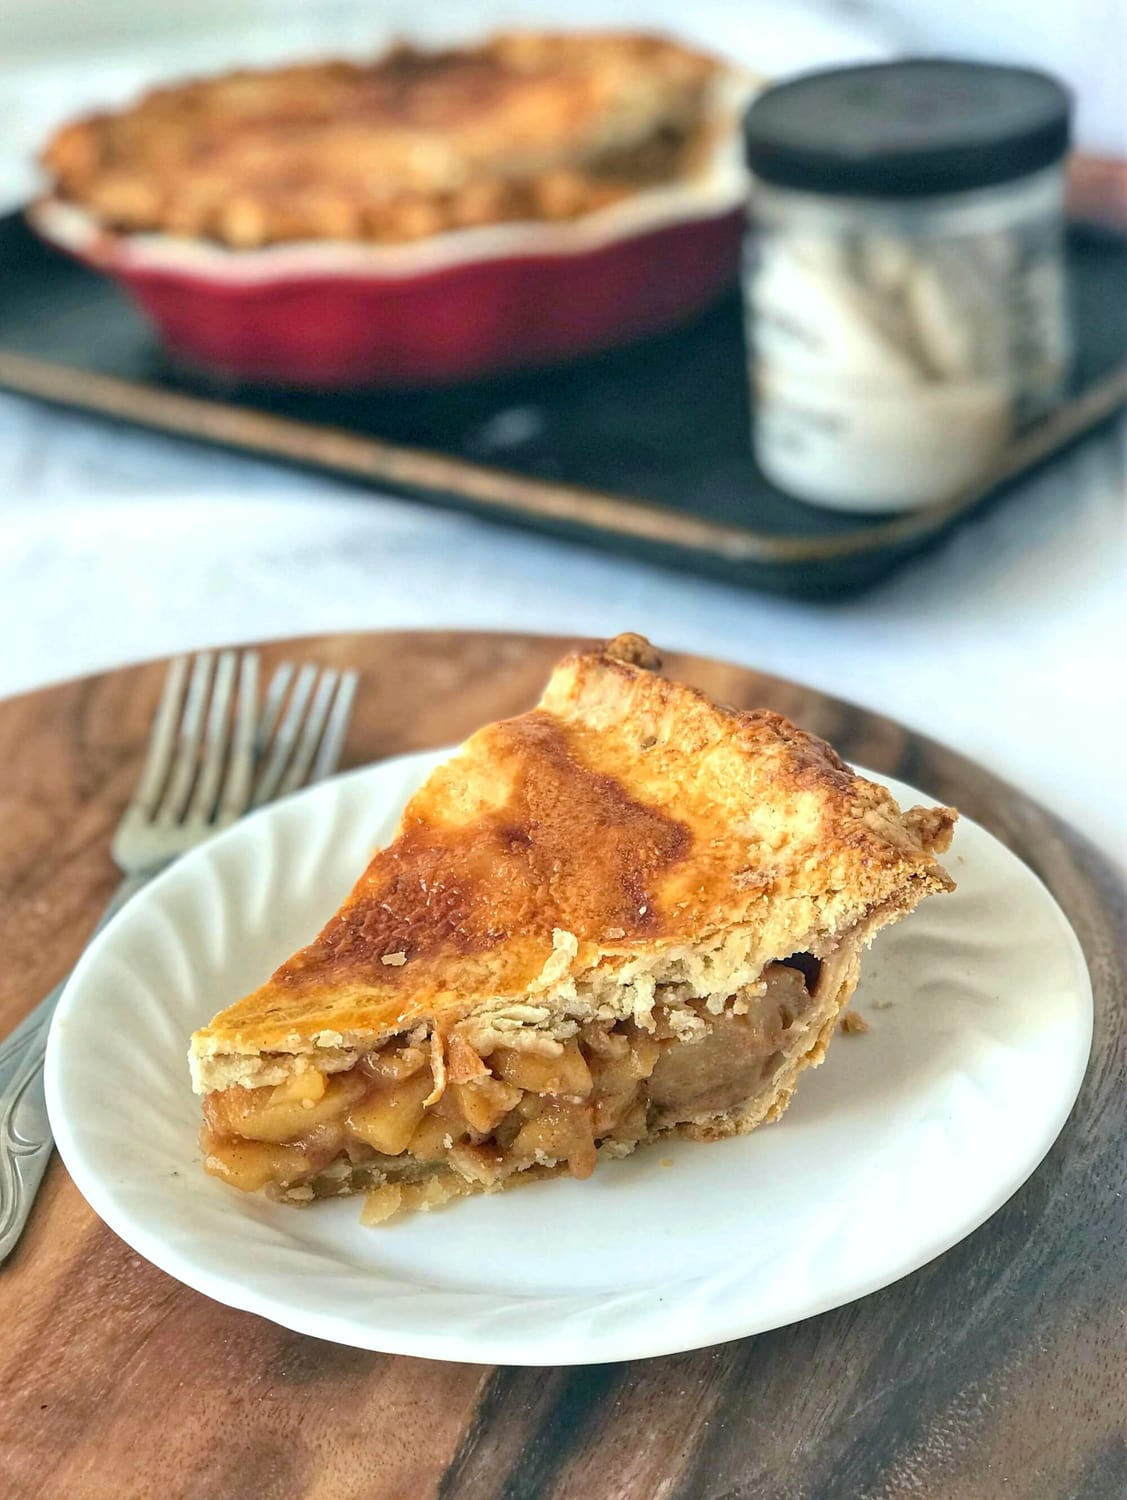 Pie slice. Apple pie from scratch that slices beautifully with amazingly flaky crusts, spiced apple filling that holds its shape, and is perfect for any holiday!